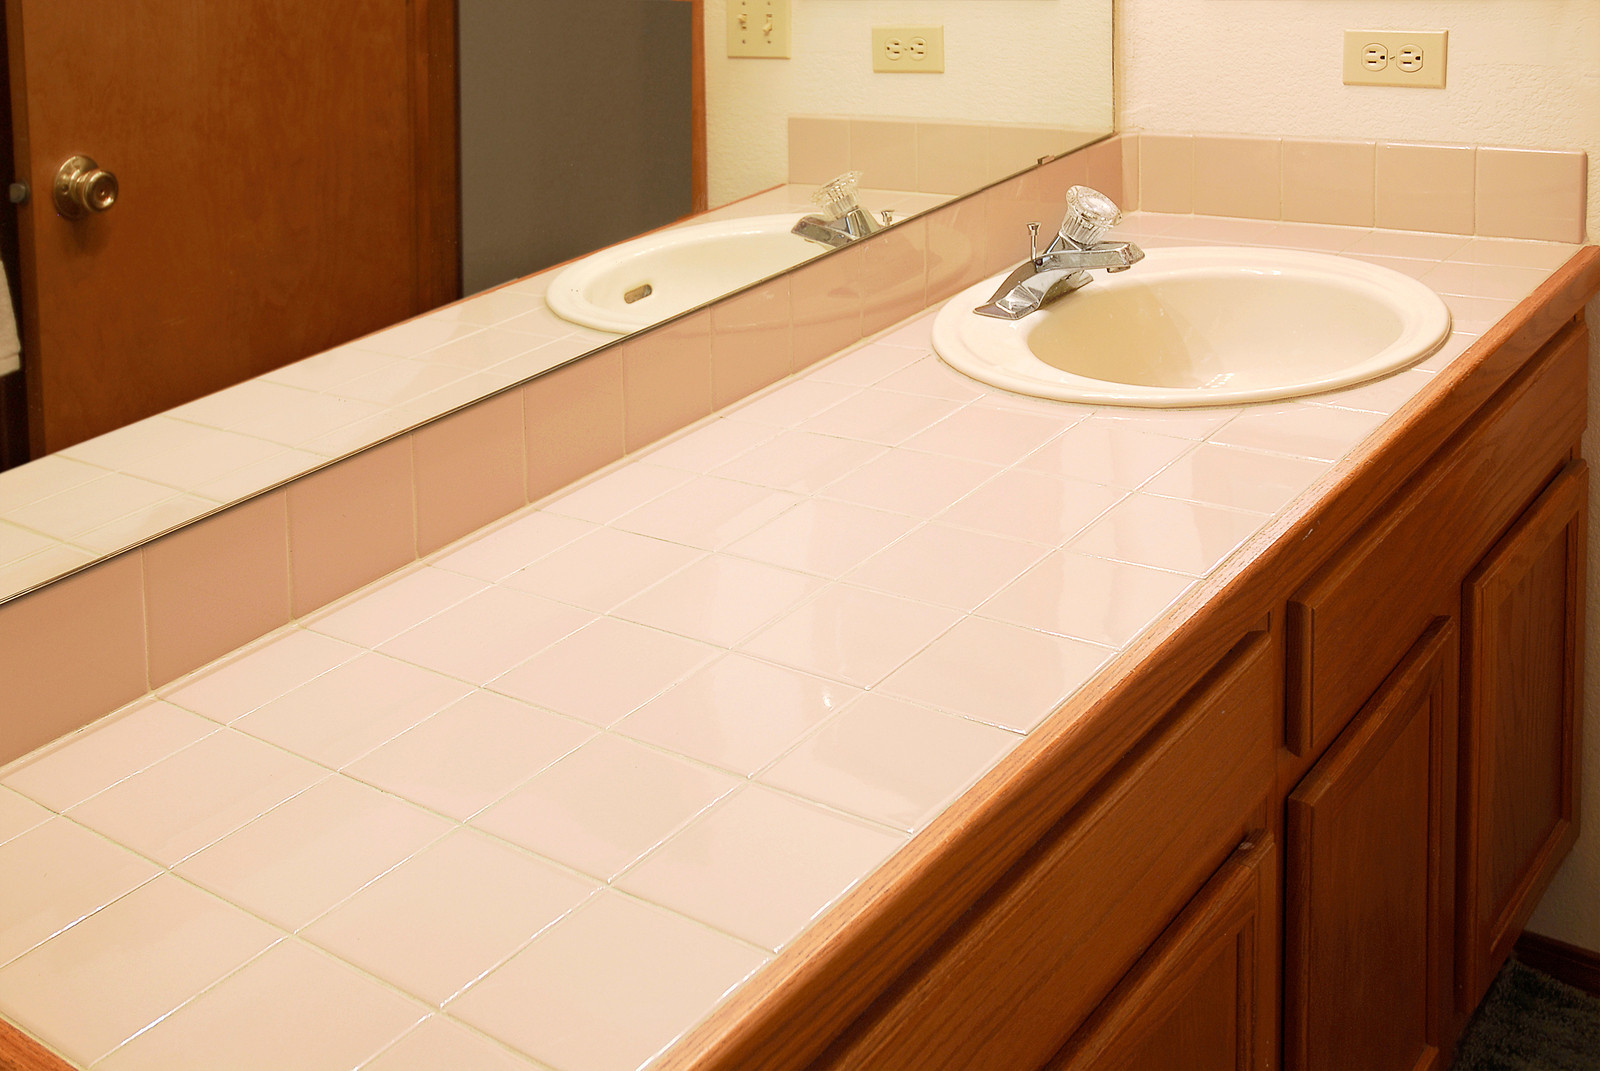 Remodel Bathroom Without Removing Tile green remodeling archives - miracle method surface refinishing blog